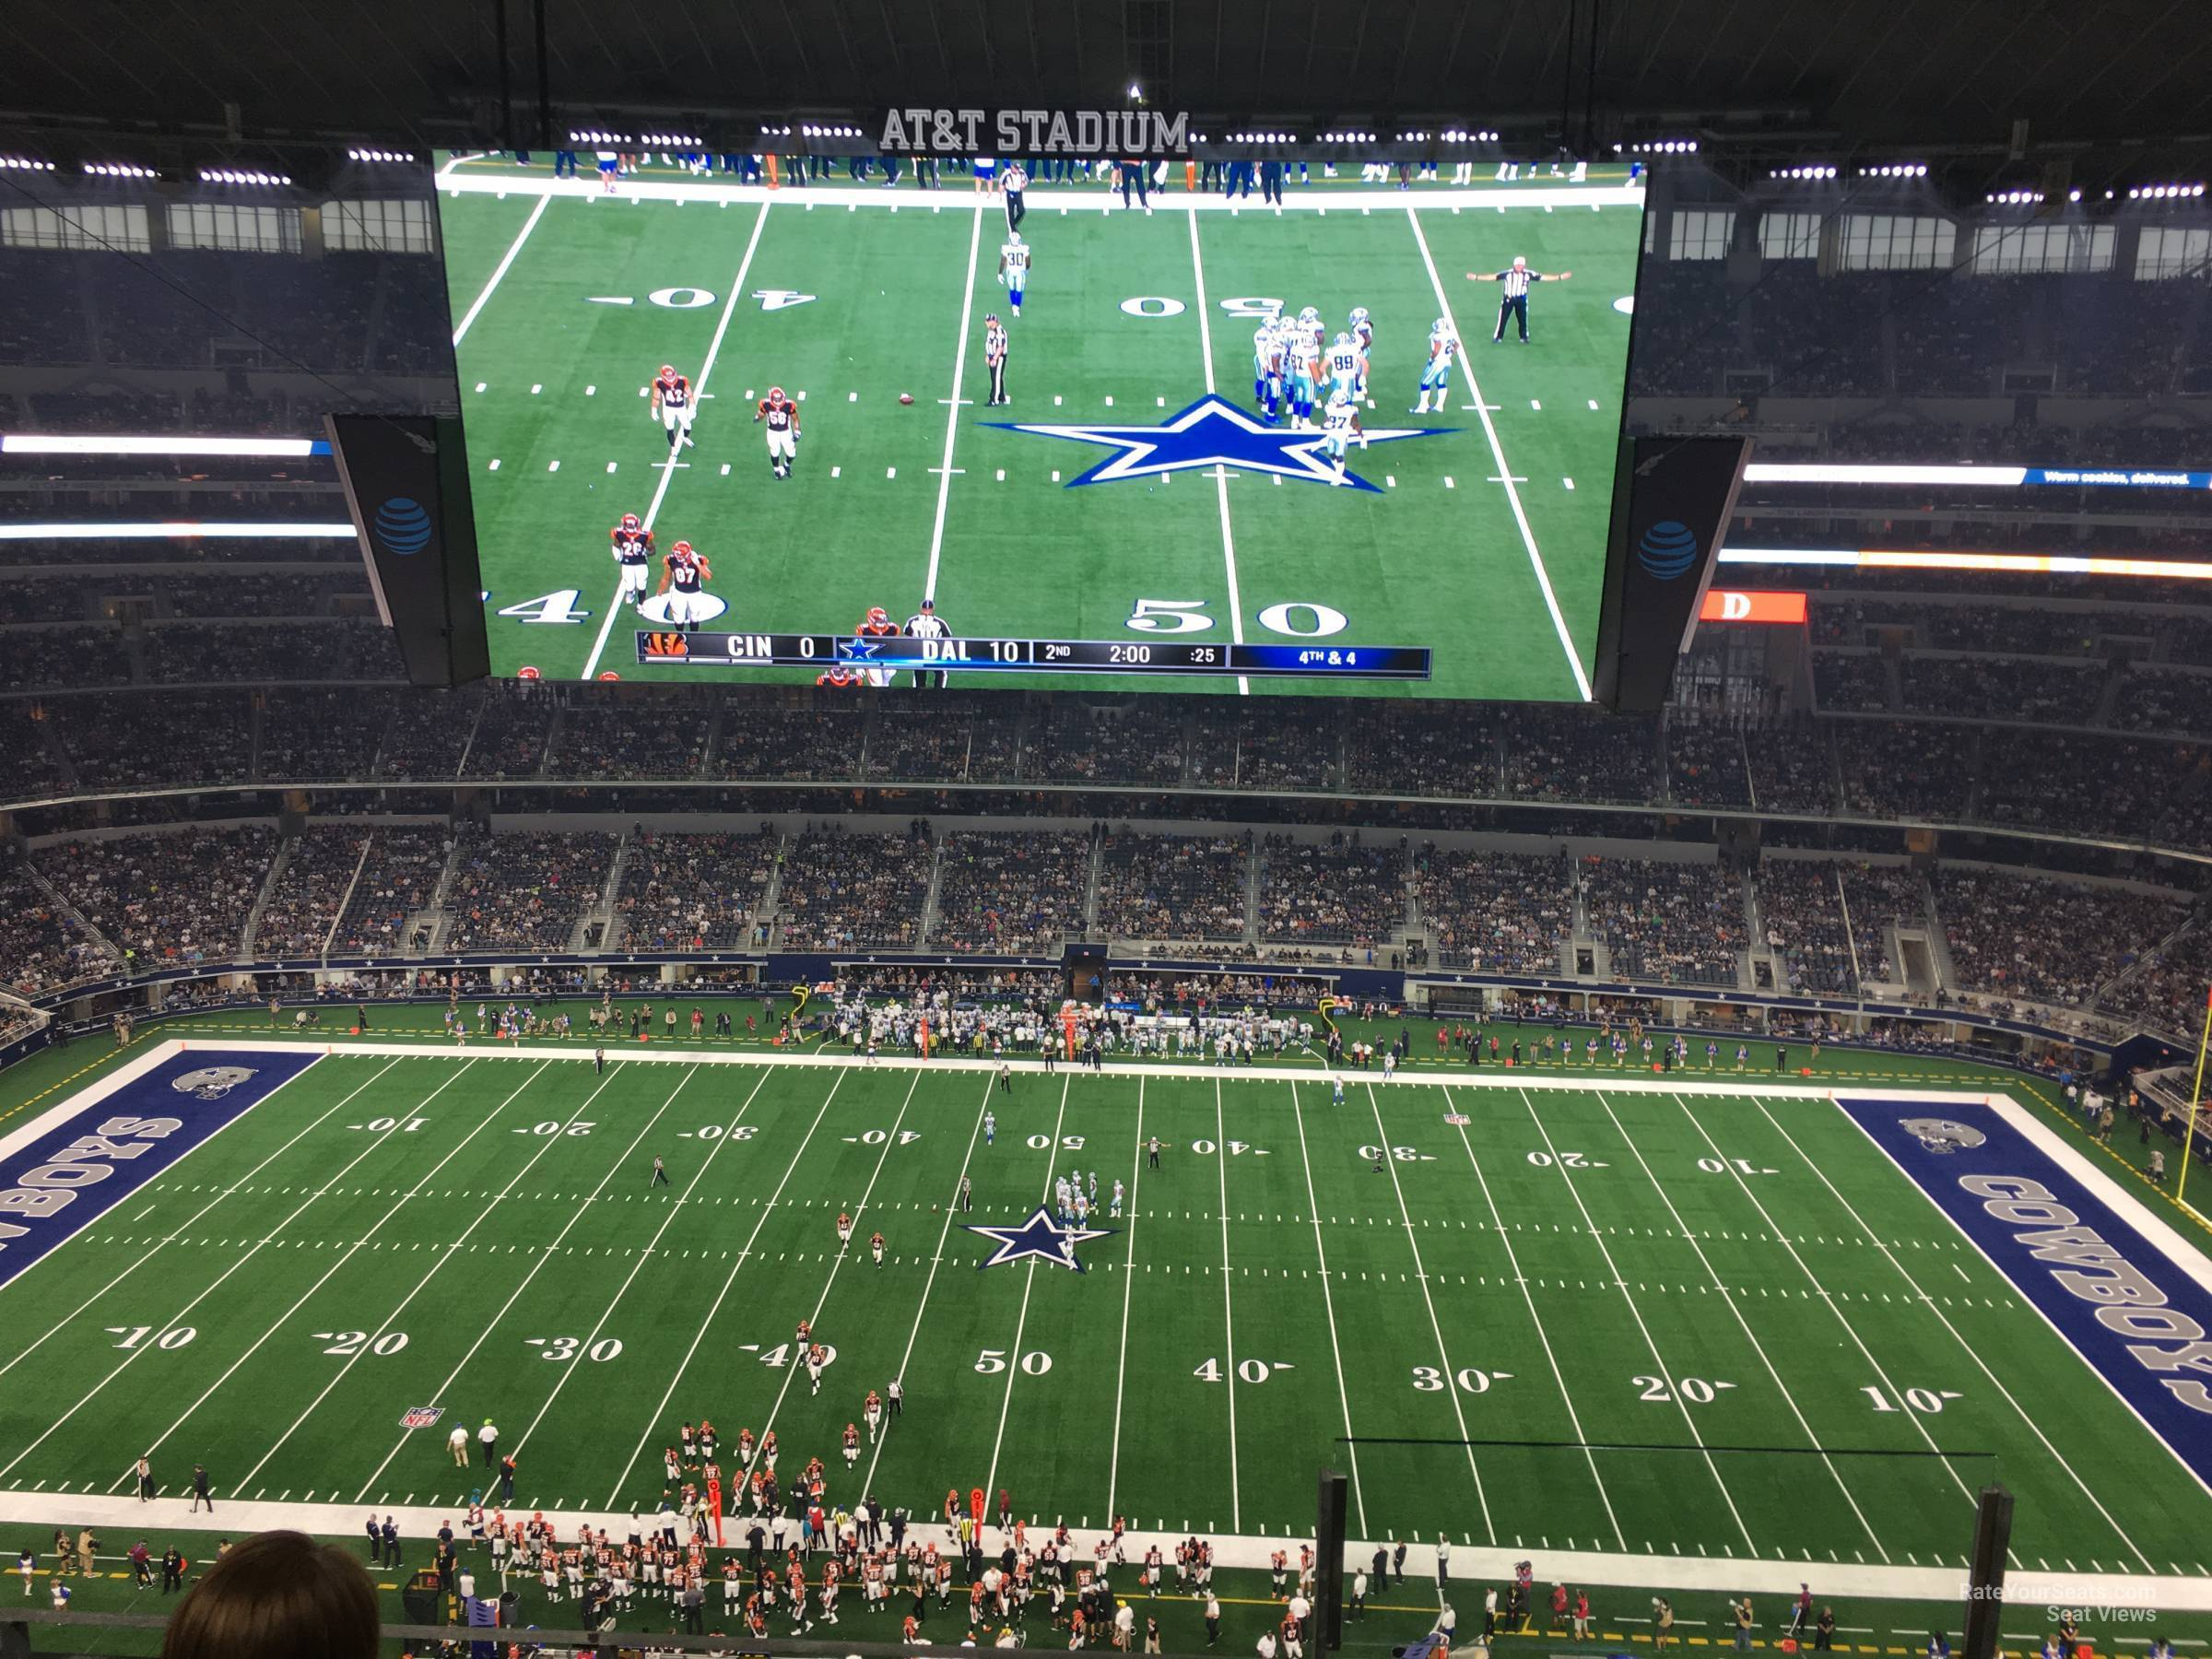 Dallas Cowboys Seat View for AT&T Stadium Section 442, Row 4